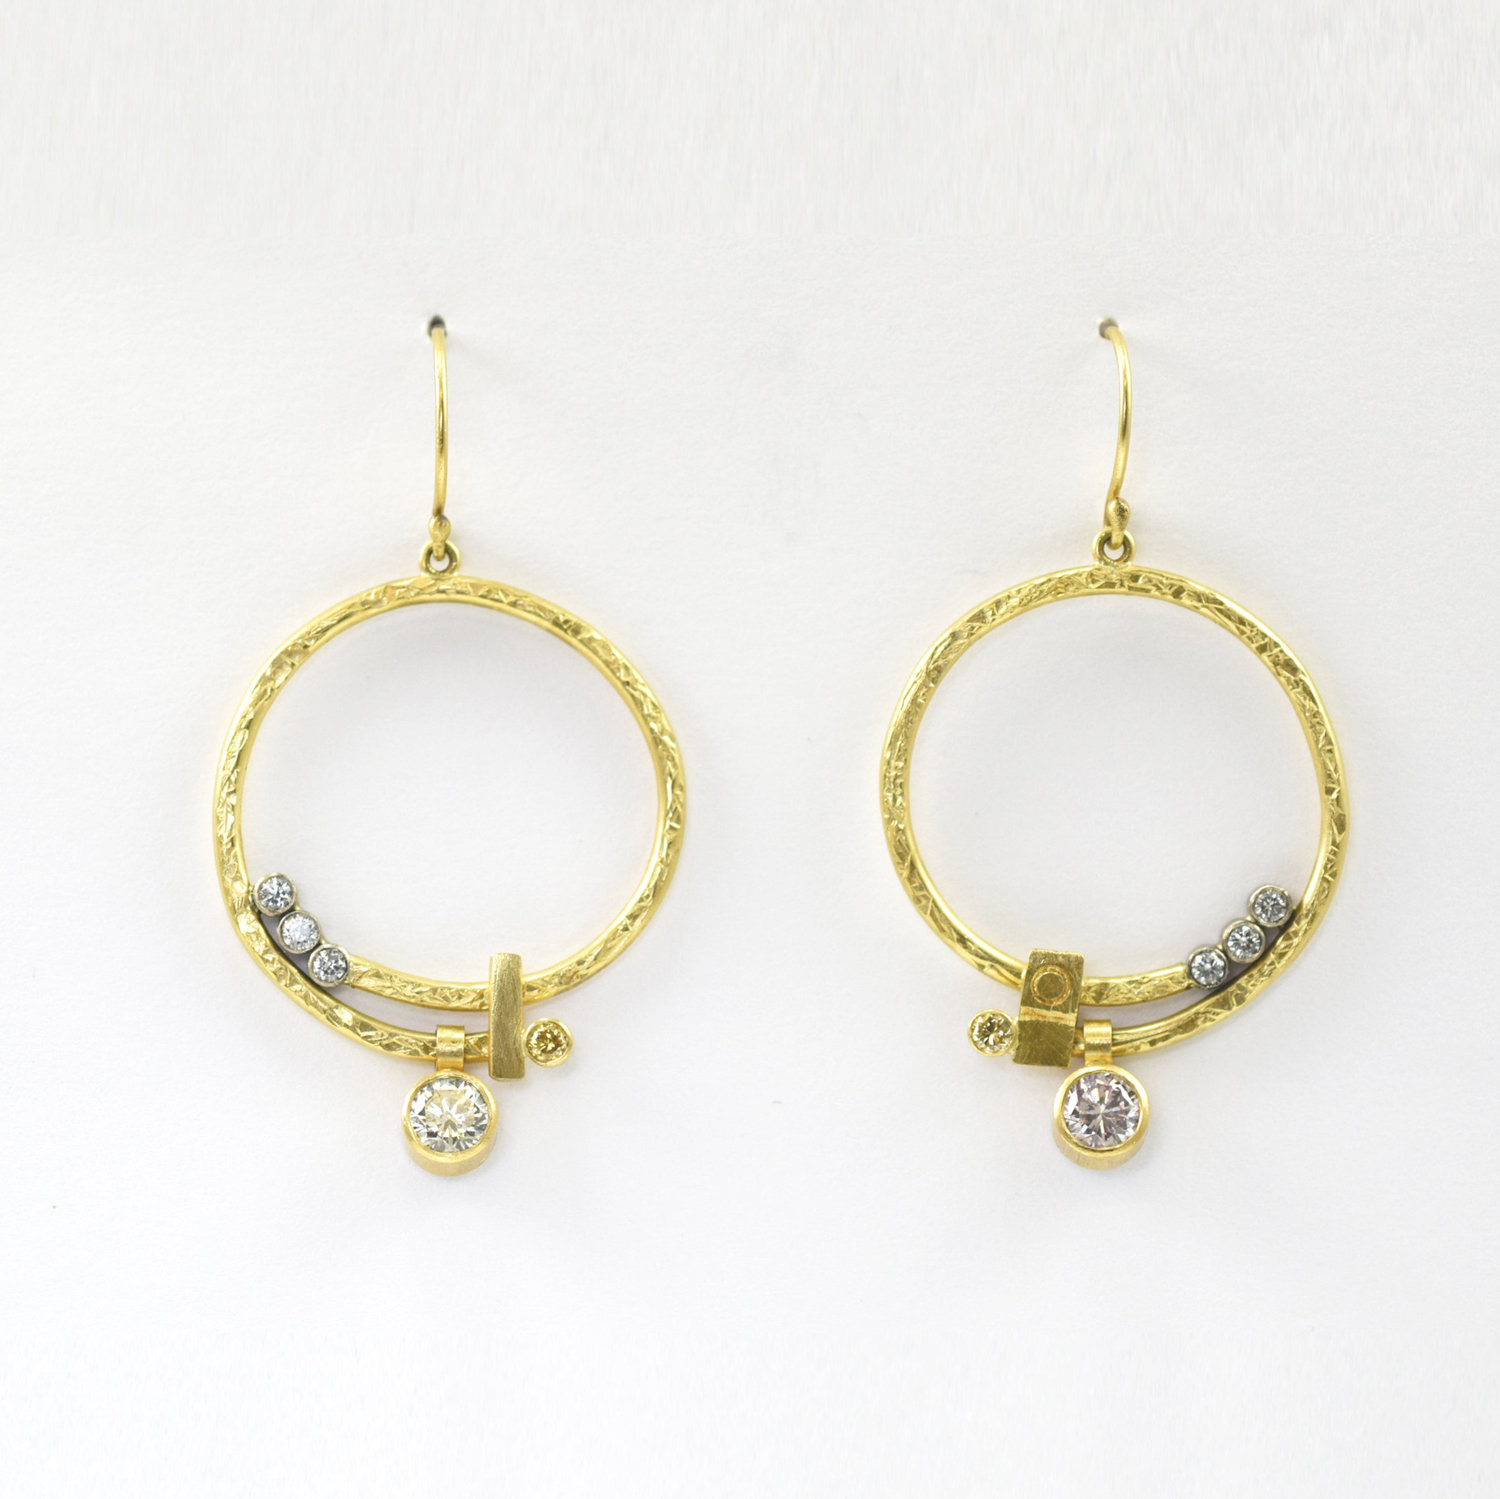 Roger Rimel 18K Yellow Gold Earrings with White and Yellow Diamonds ... 64dca26ac782